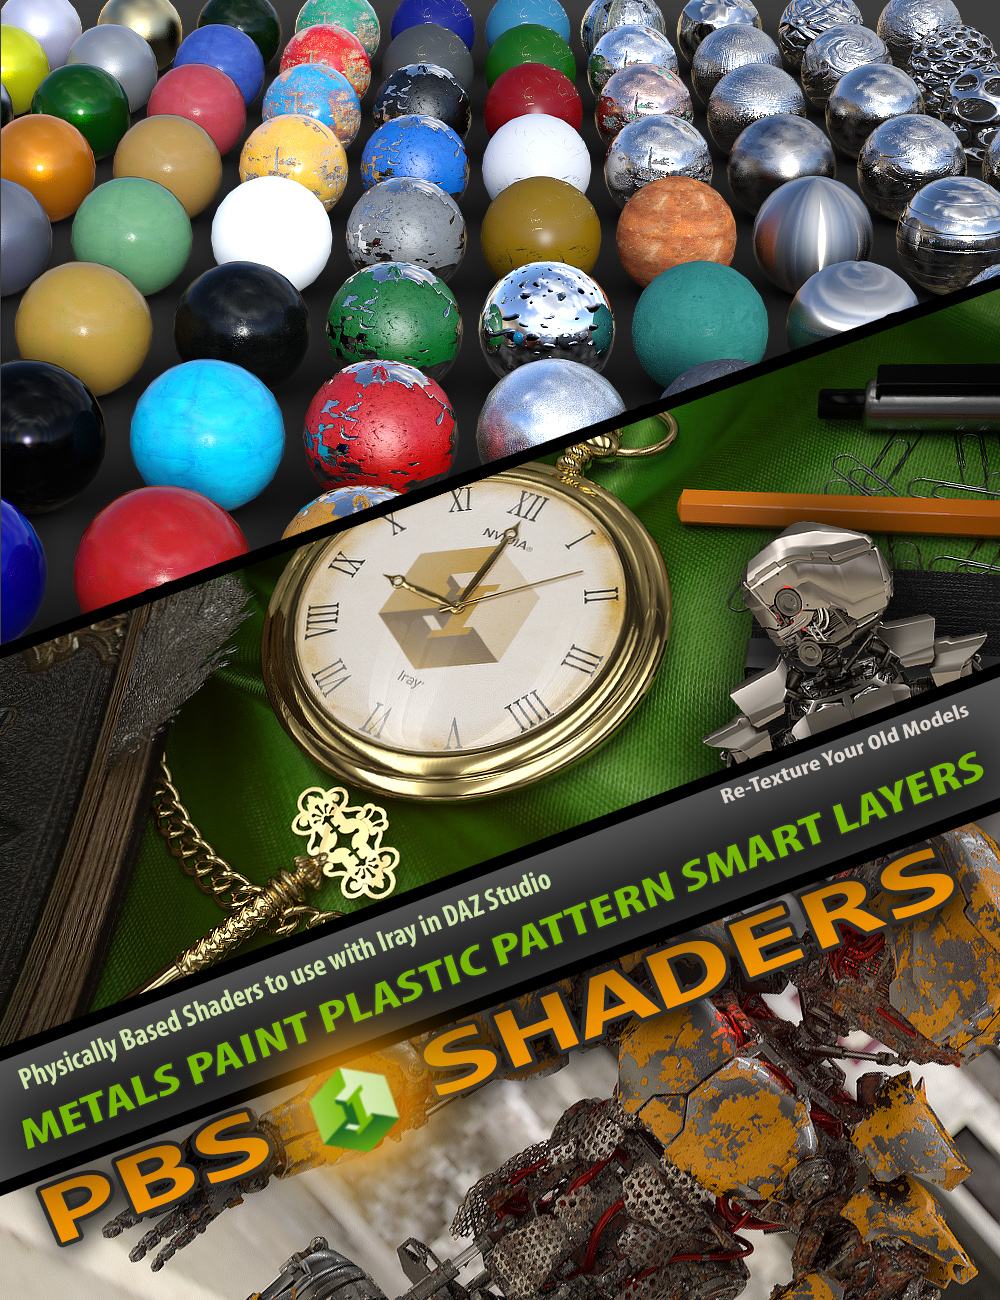 Mec4d PBS Shaders vol.1 for Iray by: Mec4D, 3D Models by Daz 3D